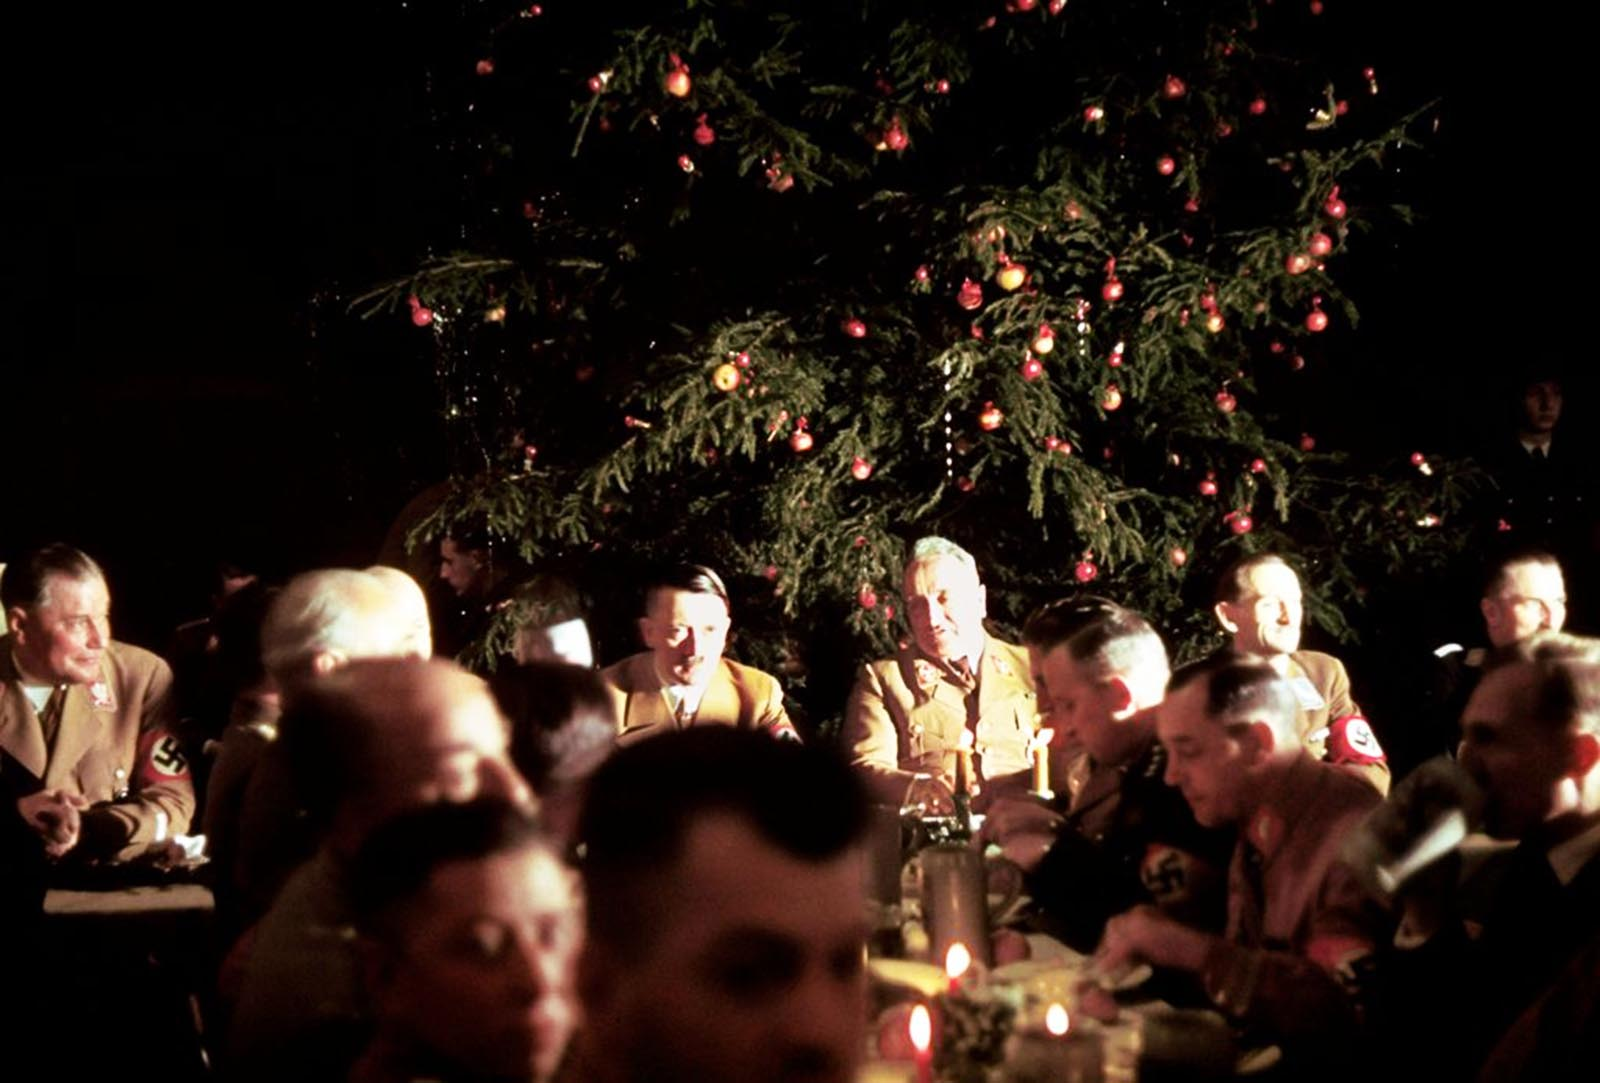 Adolf Hitler and other Nazi officials celebrate Christmas at the Lowenbraukeller restaurant in Munich.